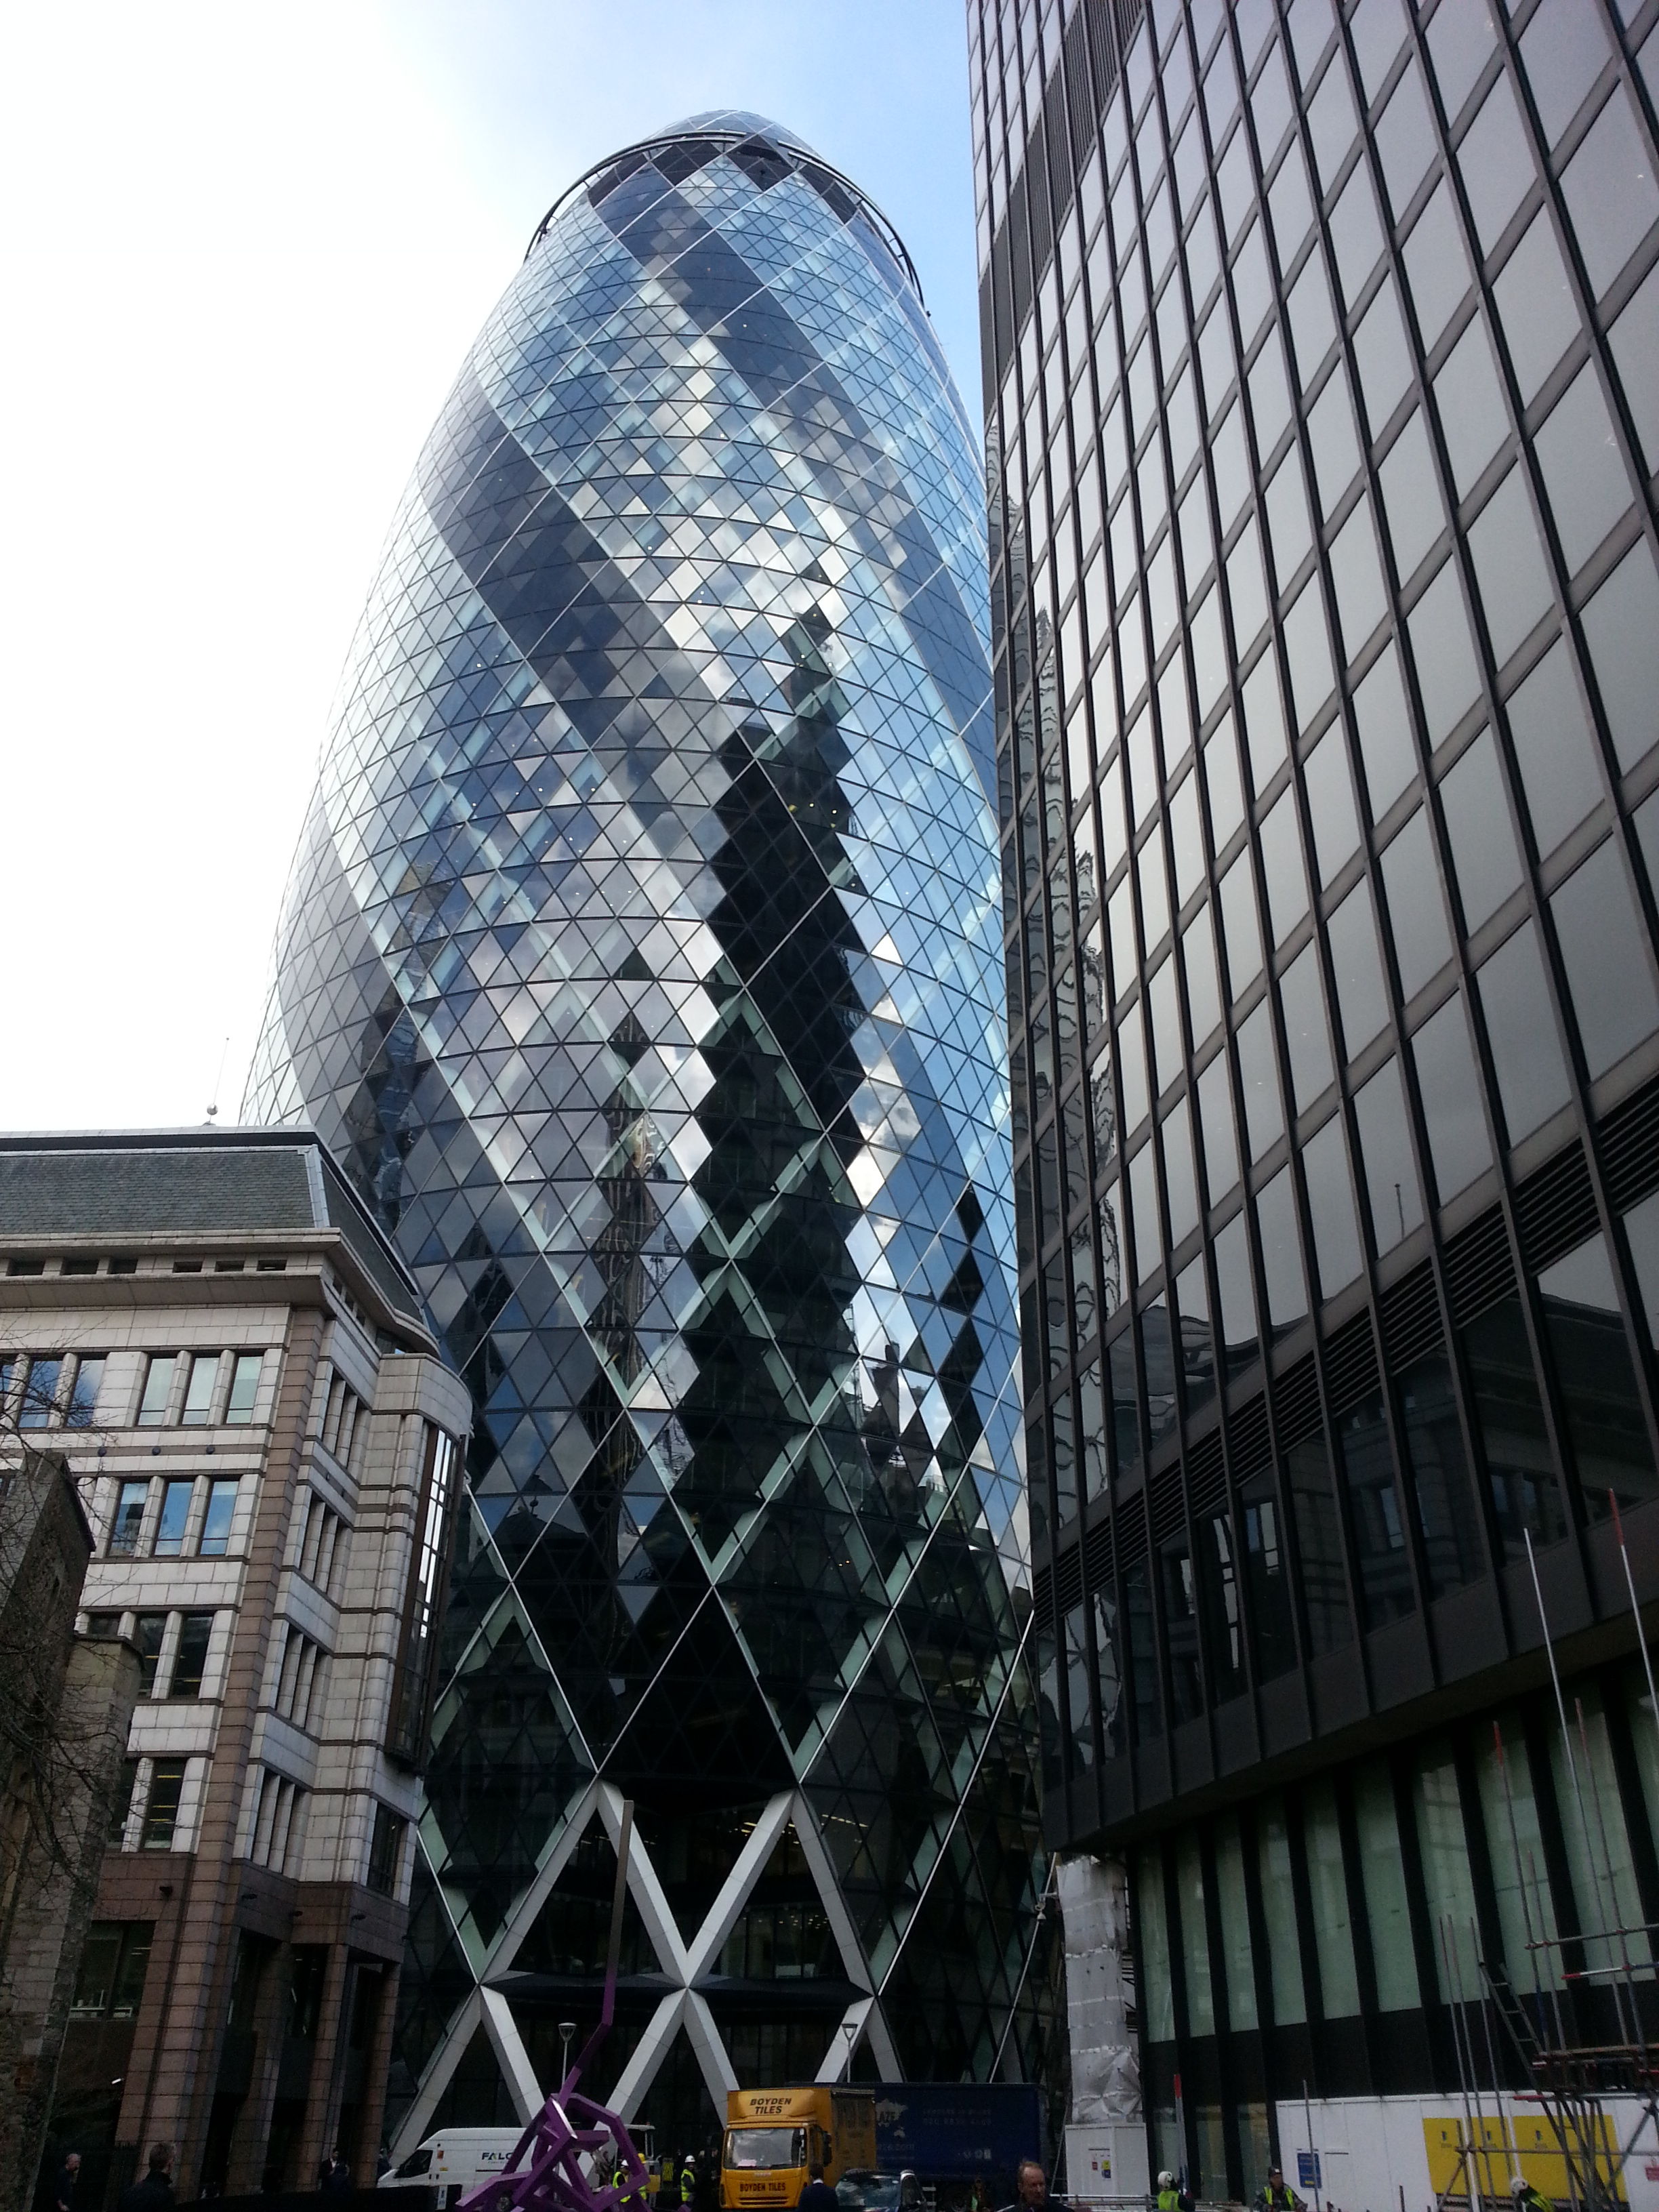 walking to the gherkin